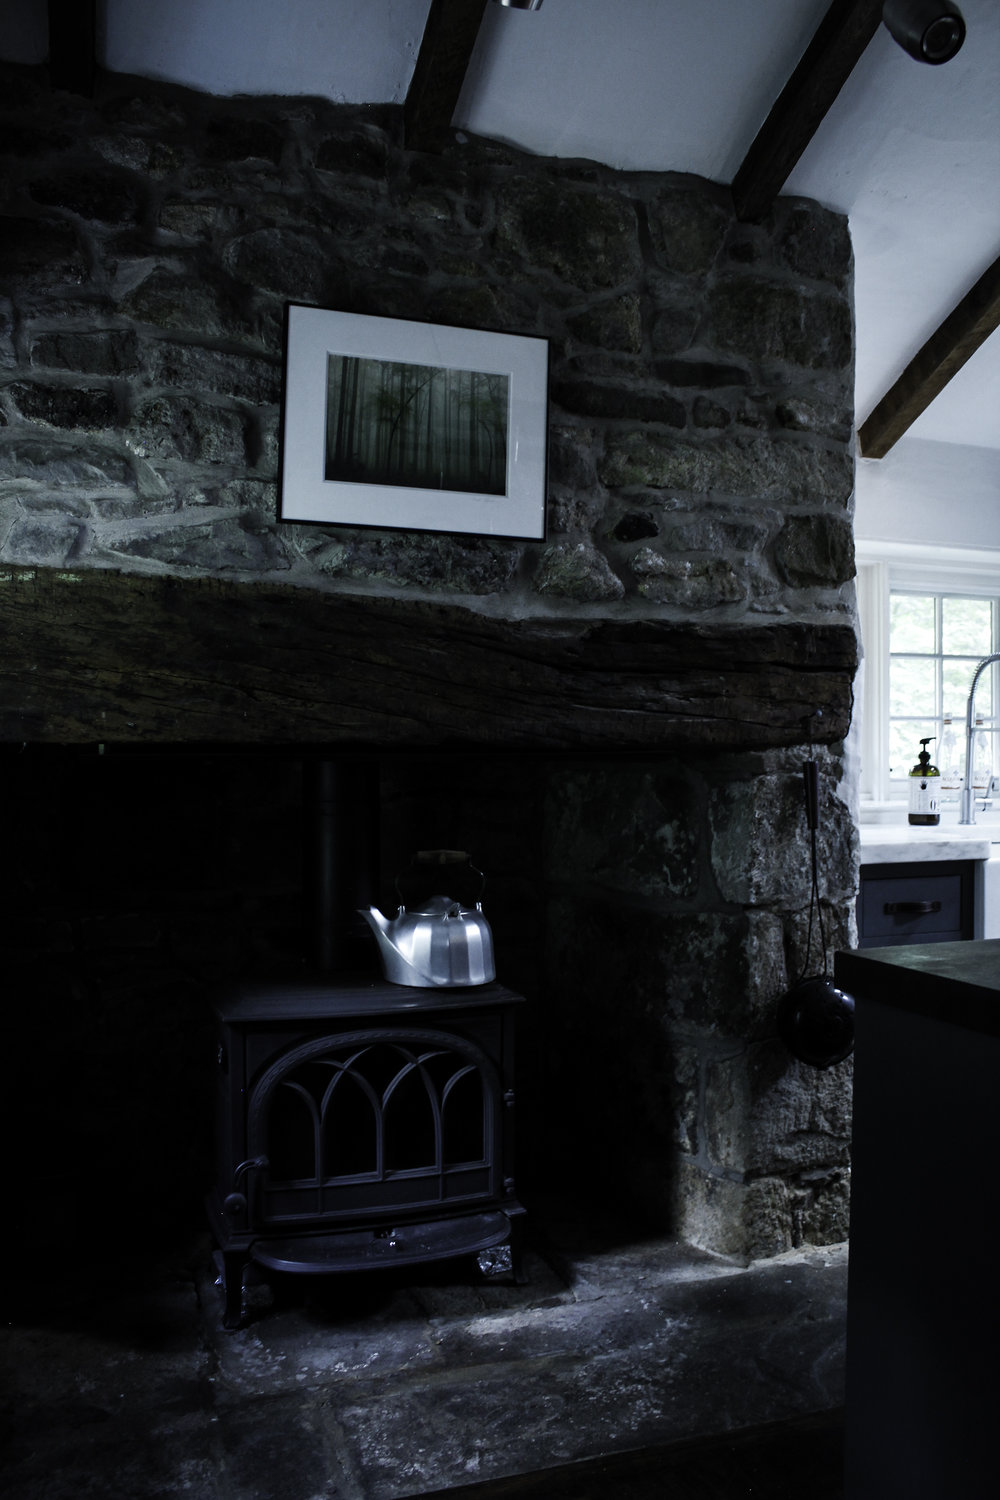 NEWHOPE_COTTAGE_KITCHEN2.jpg